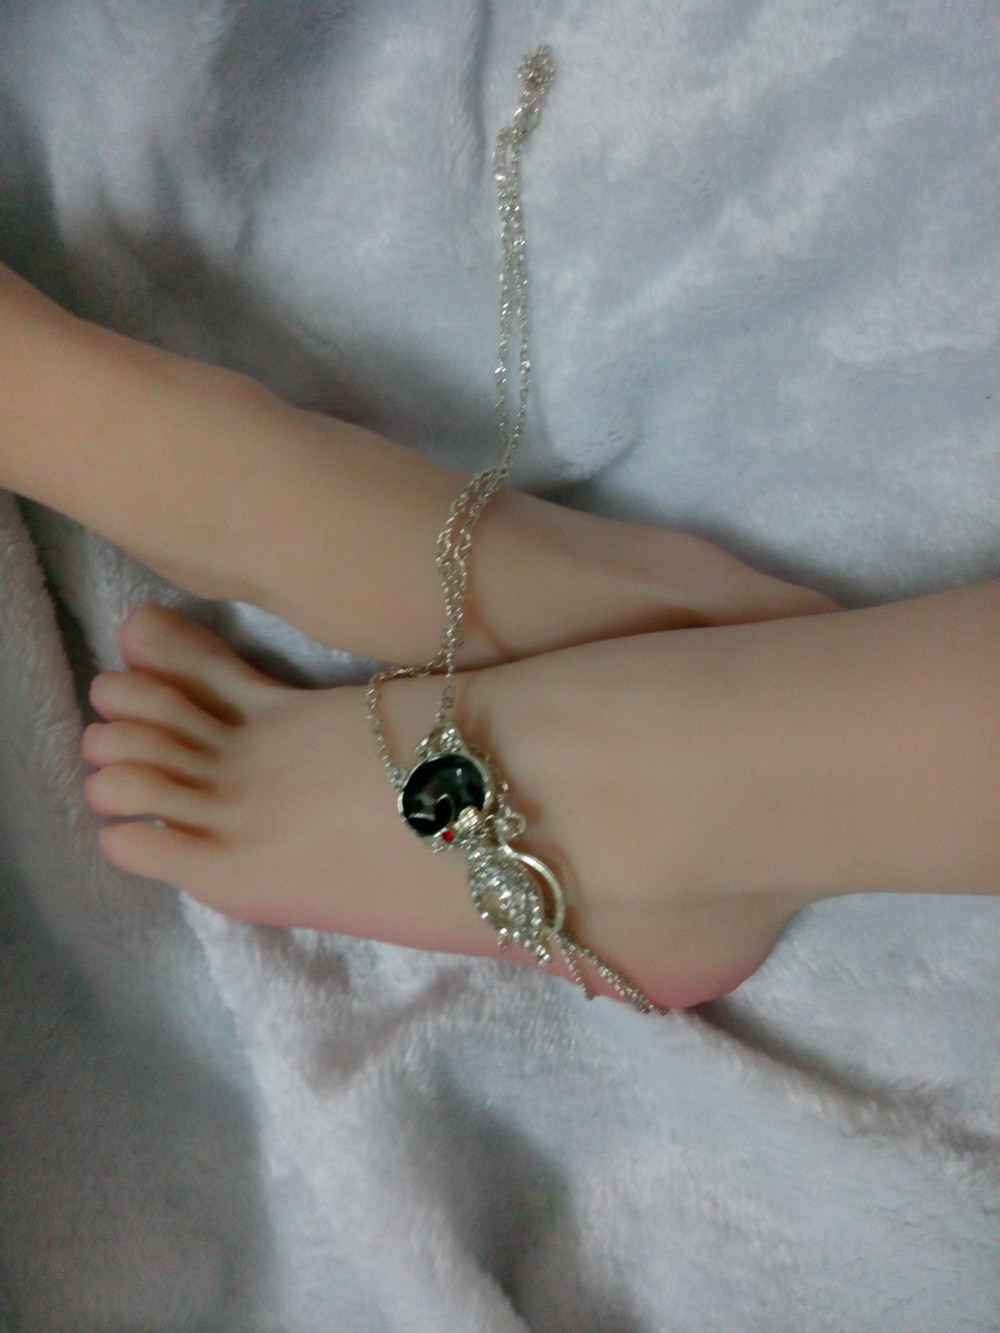 Asian Girls Foot Clones Feet Worship Fetish Foot Fetish Jobs Toys Mannequin Real Skin Free Shipping